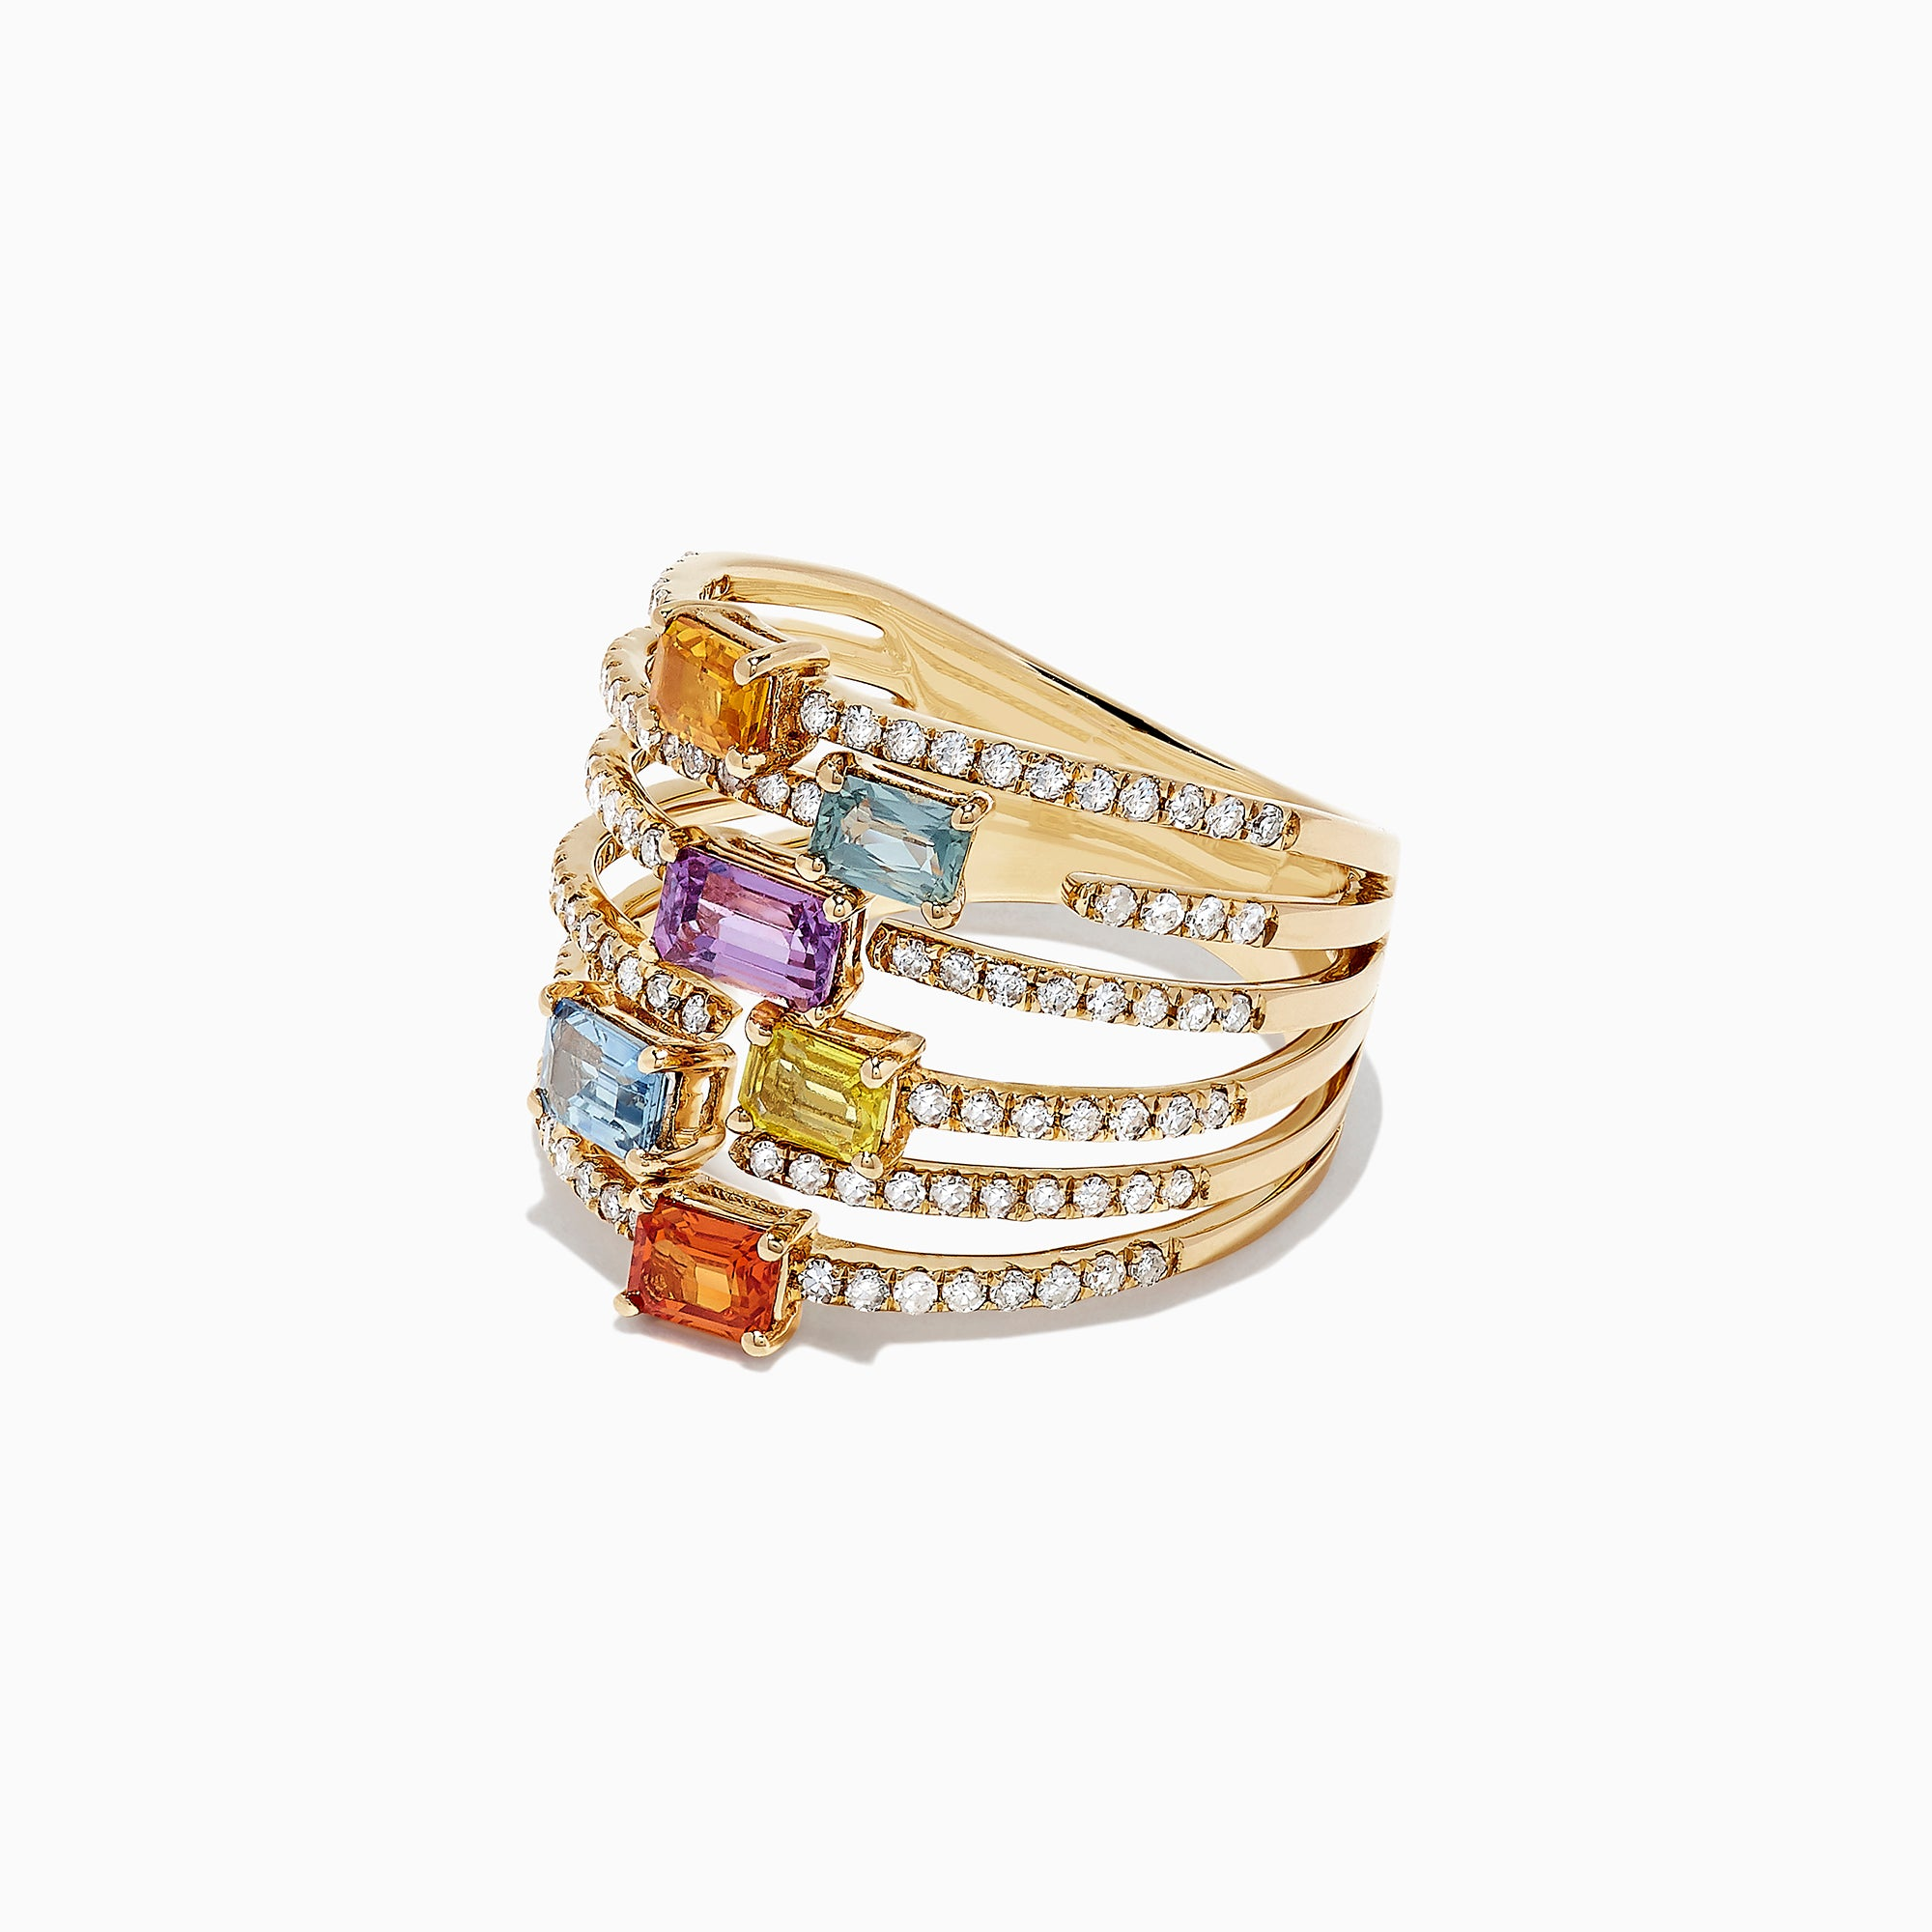 Effy Watercolors 14K Yellow Gold Multi Sapphire and Diamond Ring,2.28 TCW